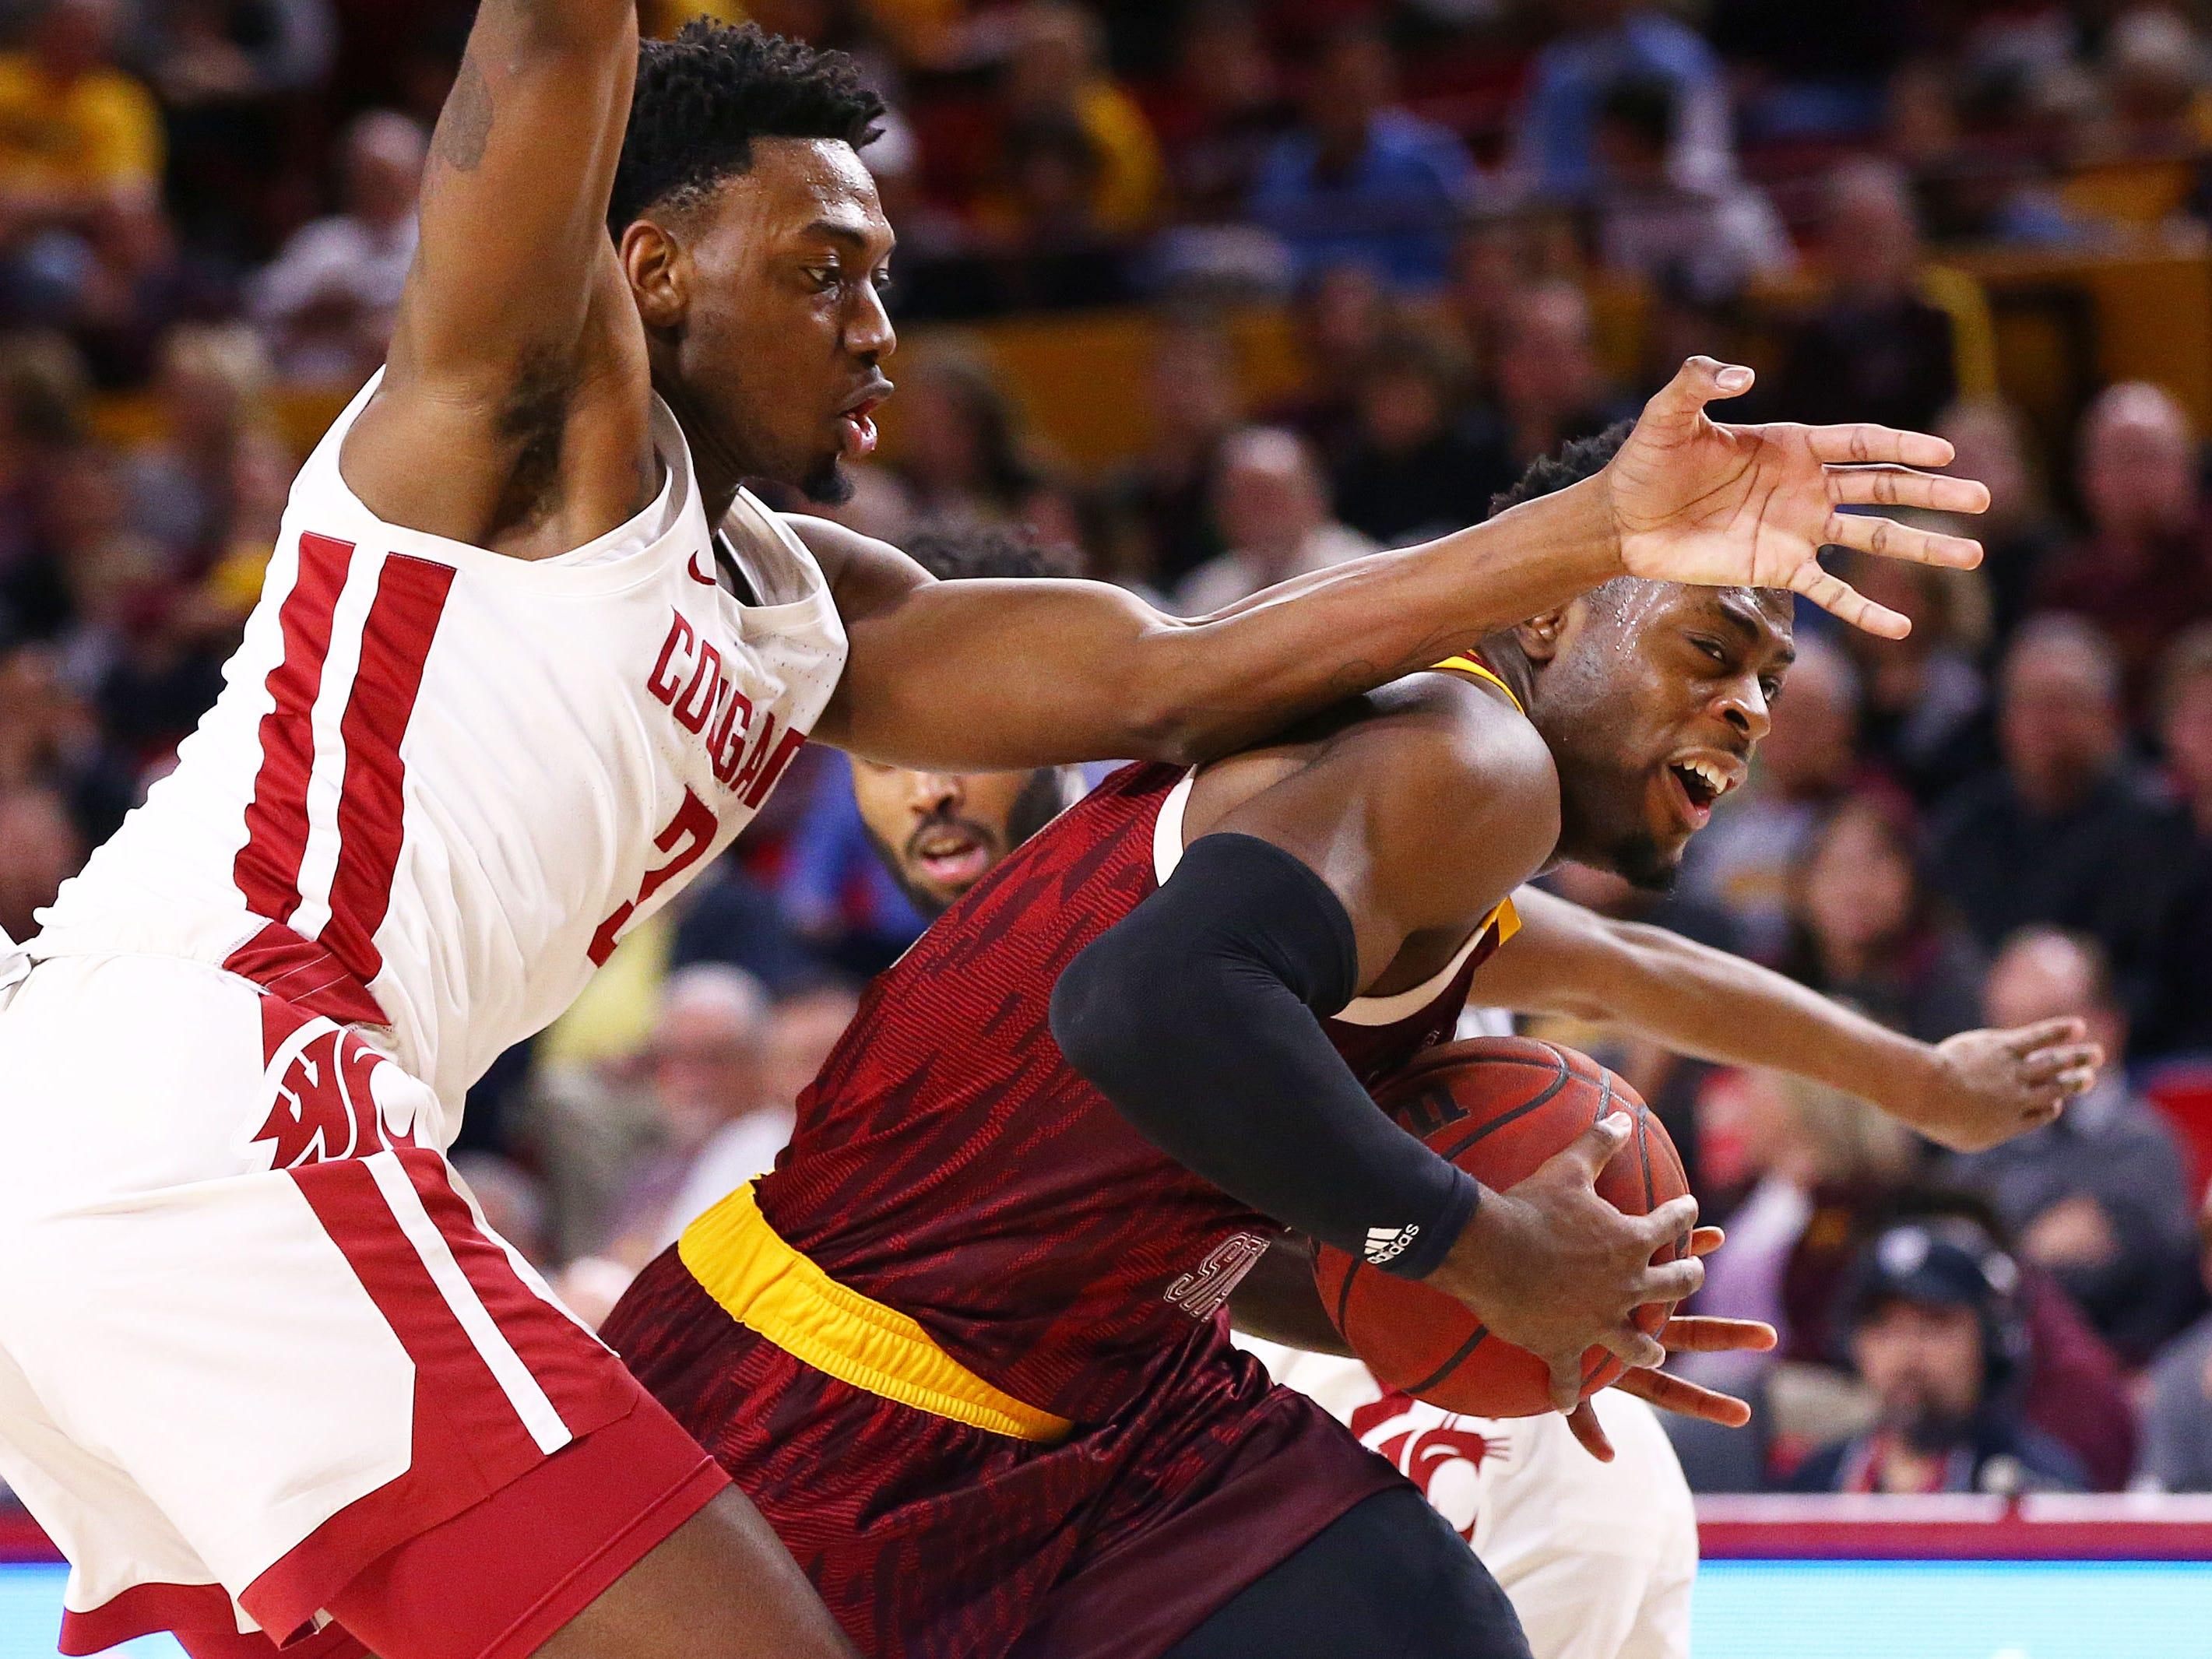 Arizona State Sun Devils guard Luguentz Dort is pressured by Washington State Cougars forward Robert Franks (3) in the first half on Feb. 7 at Wells Fargo Arena in Tempe.